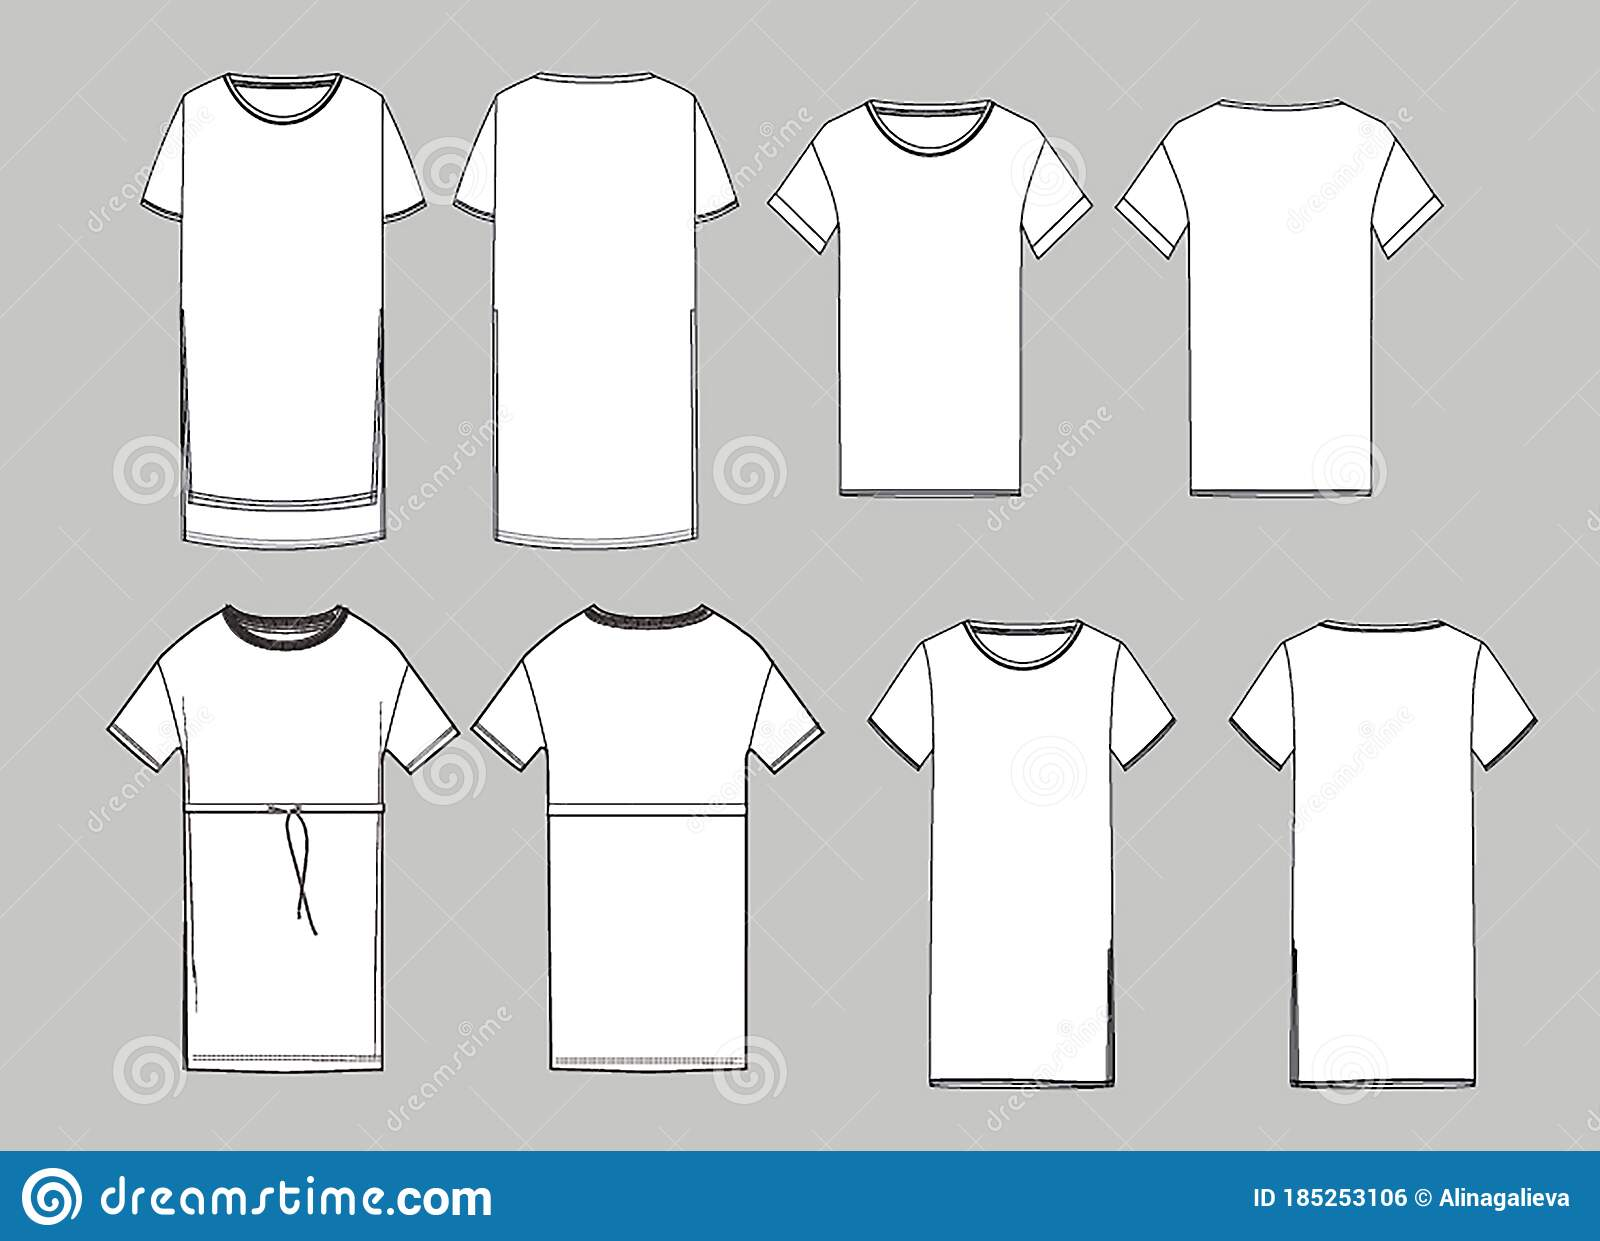 Women S Simple Long T Shirt Design Apparel Template Fashion Flat Sketch Vector Stock Vector Illustration Of Classic Clothing 185253106